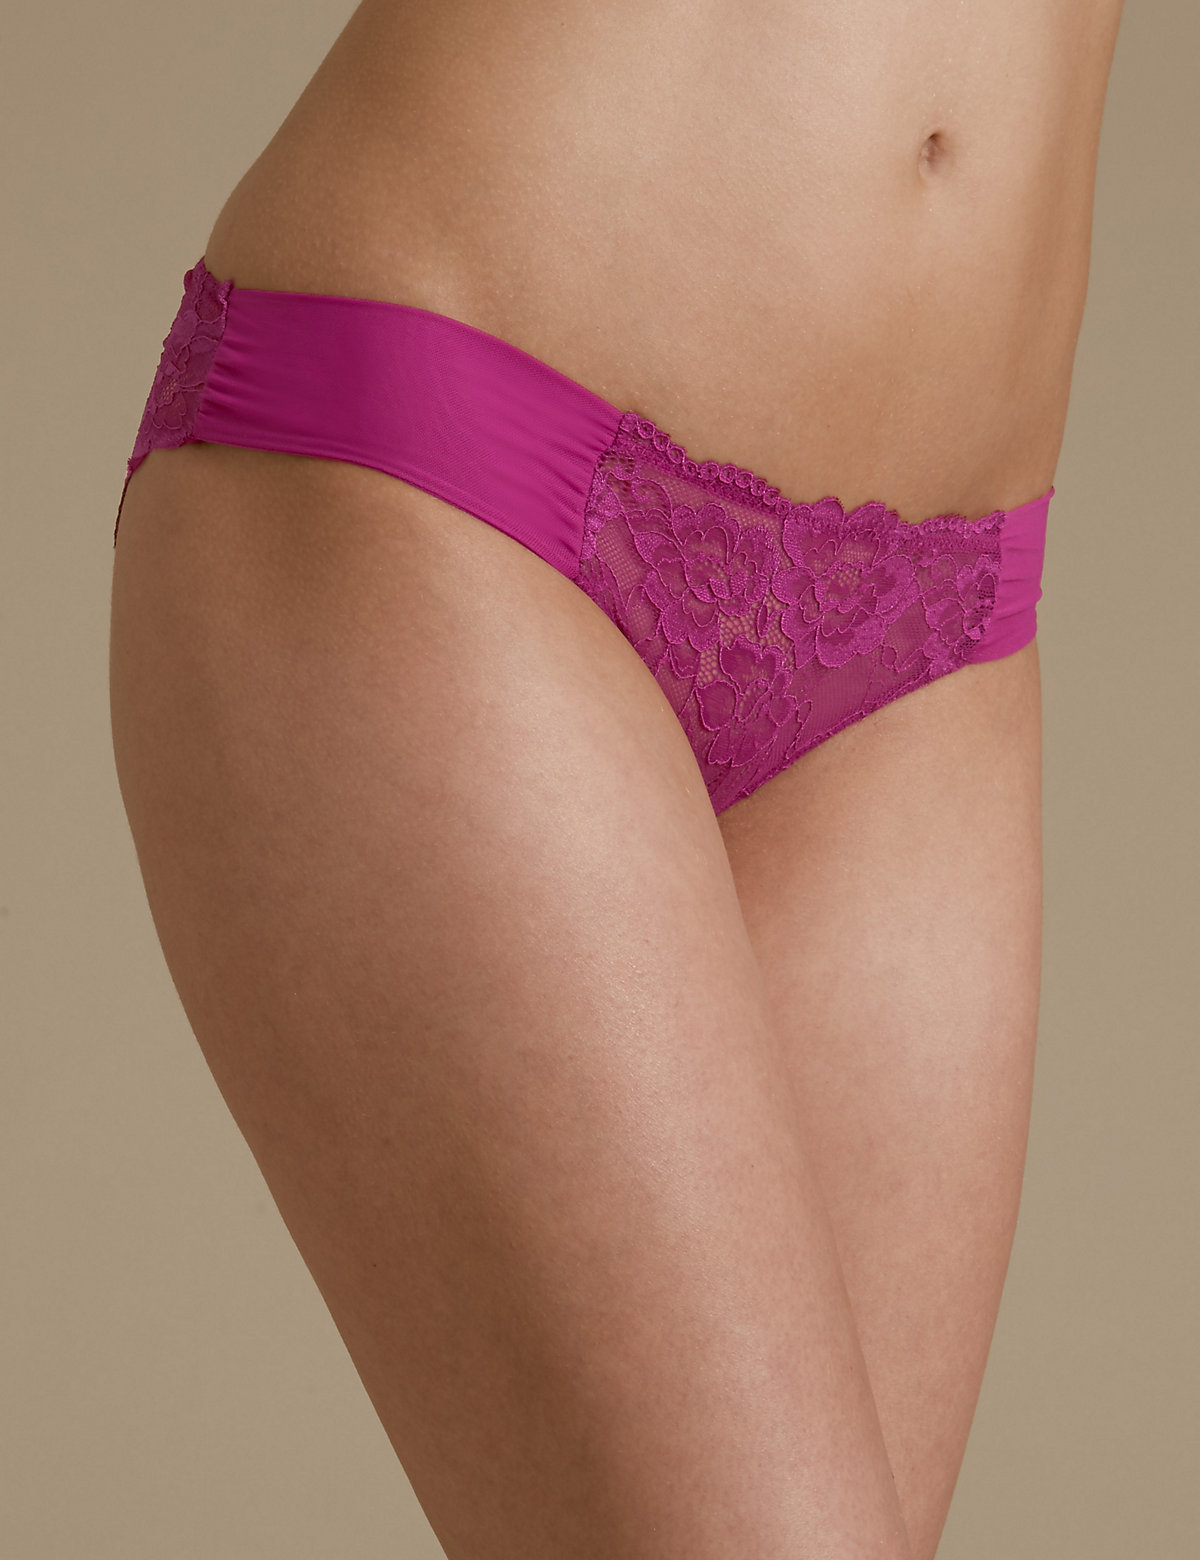 M&s Collection Rio Sweetheart All Over Lace Brazilian Knickers